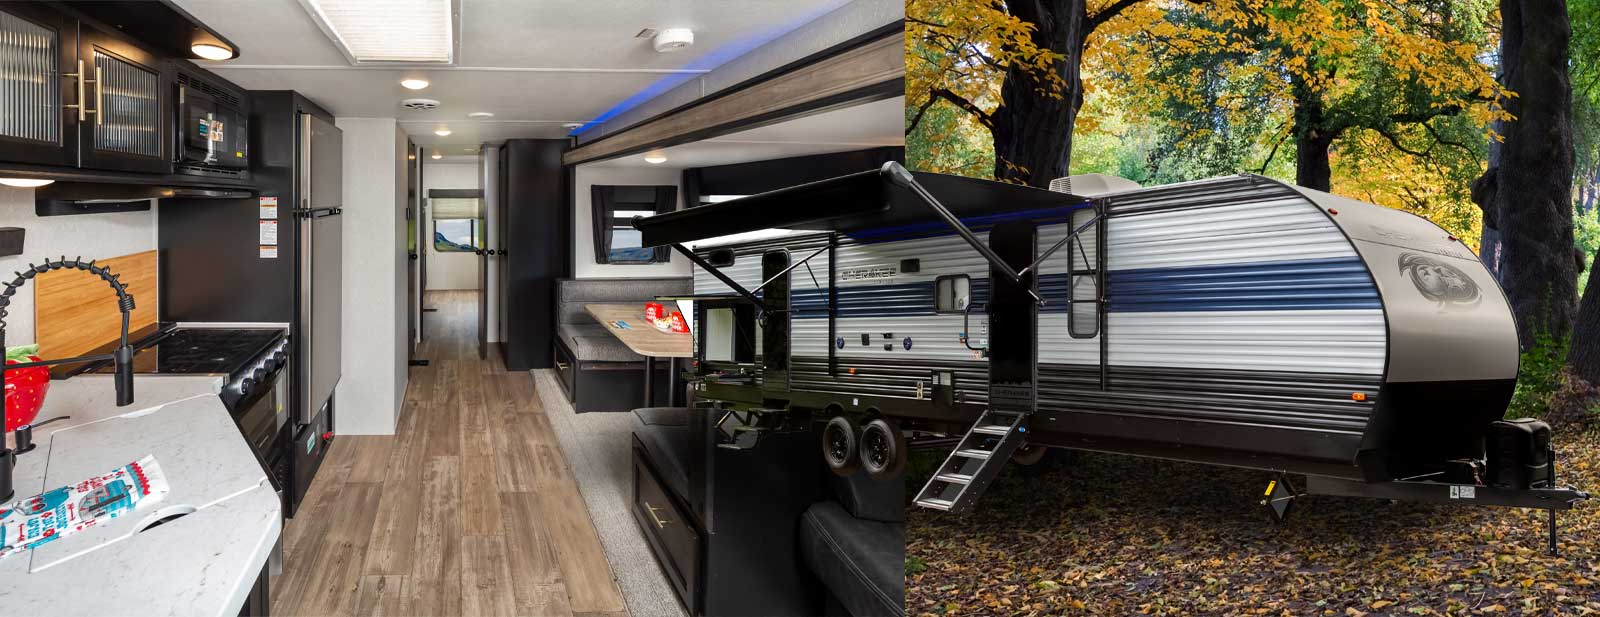 Cherokee | Forest River RV - Manufacturer of Travel Trailers